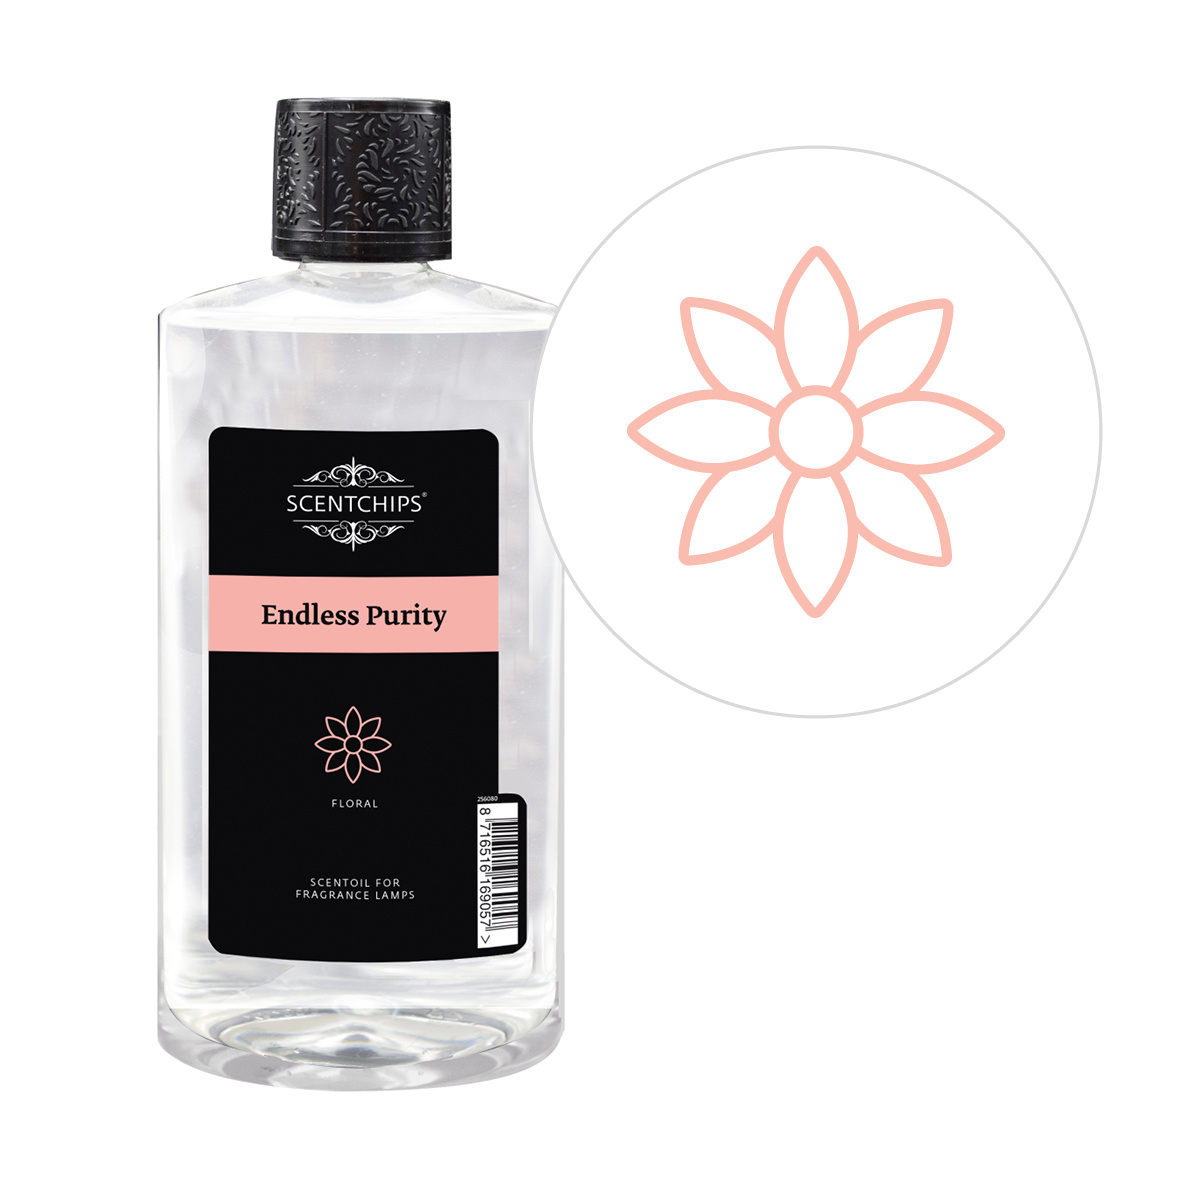 Scentchips® Endless Purity Duftöl - ScentOils